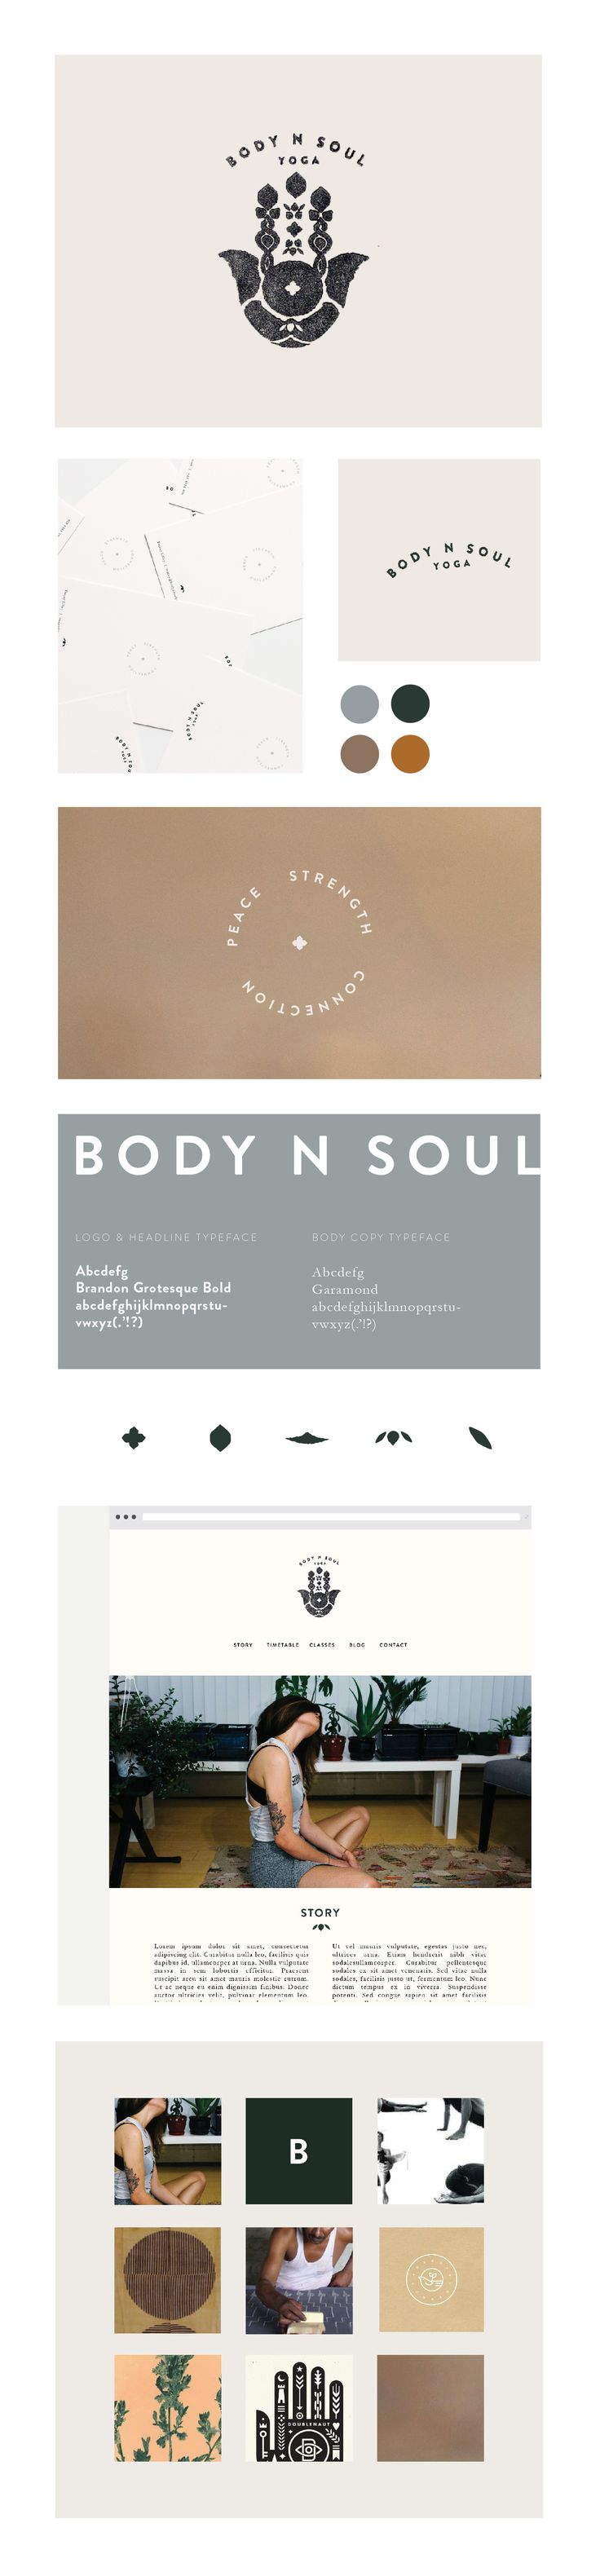 Simple, modern logo design by Kelsey Hutchinson. Click the link to see more.   http://kelseyhutchinson.com/Body-n-Soul-Yoga  Brand identity, print and web design for Body n Soul Yoga, a yoga studio based in Central Queensland, Australia. The essence of the studio is based on three words, peace, strength and connection, with inspiration taken from Indian block printing and yogic motifs.